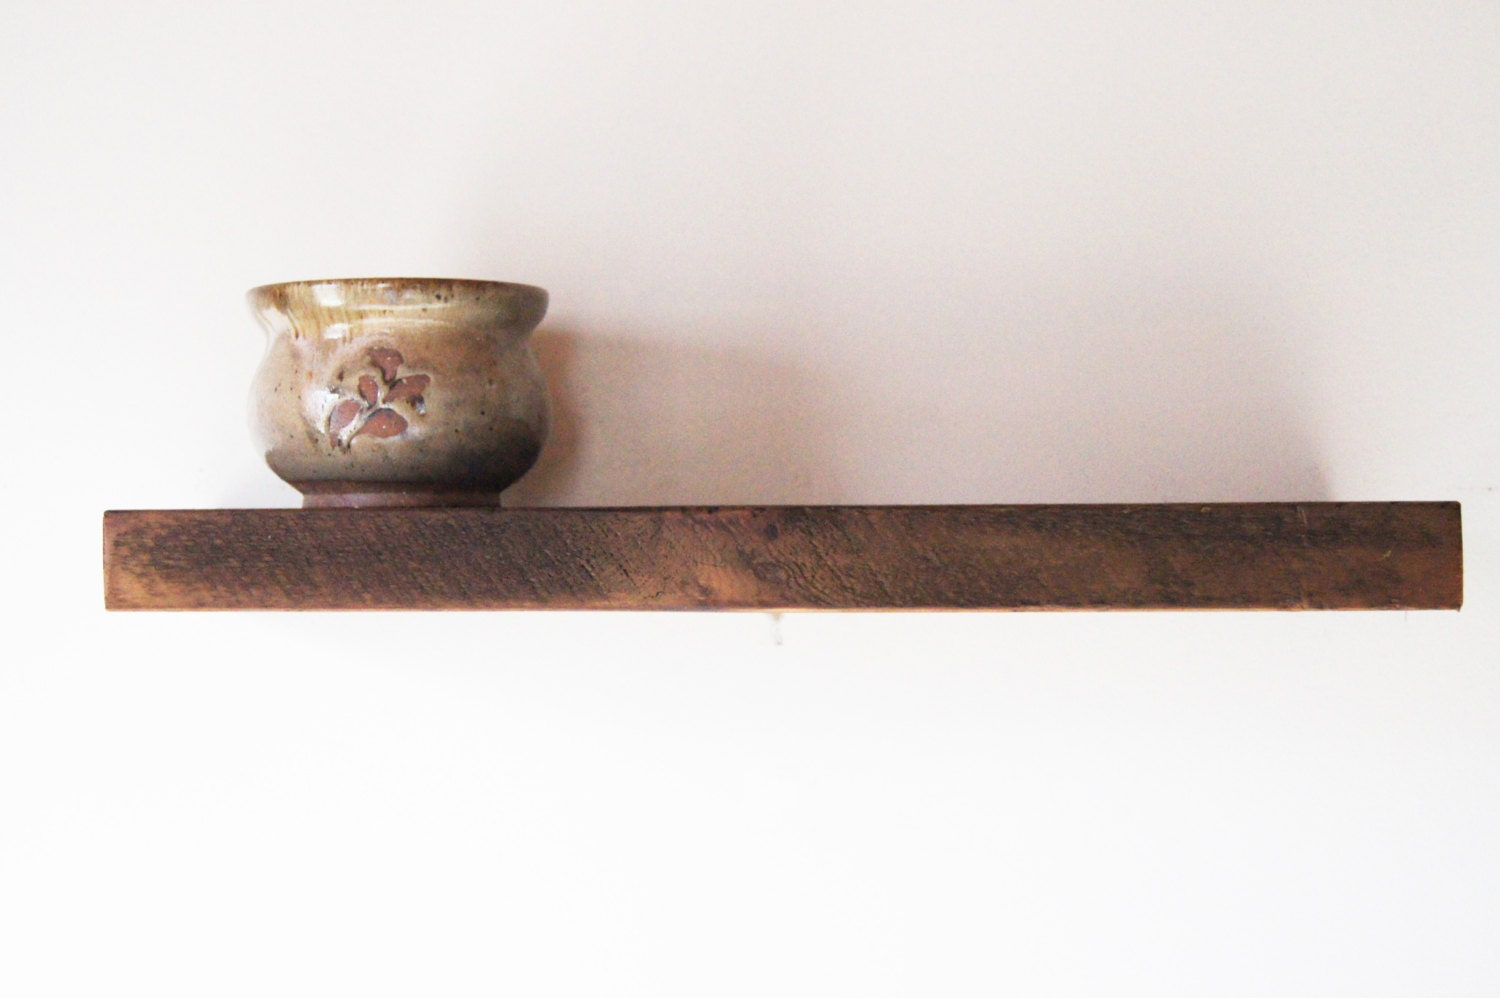 2 39 L X 8 D X 2 H Historic Reclaimed Wood Rustic By